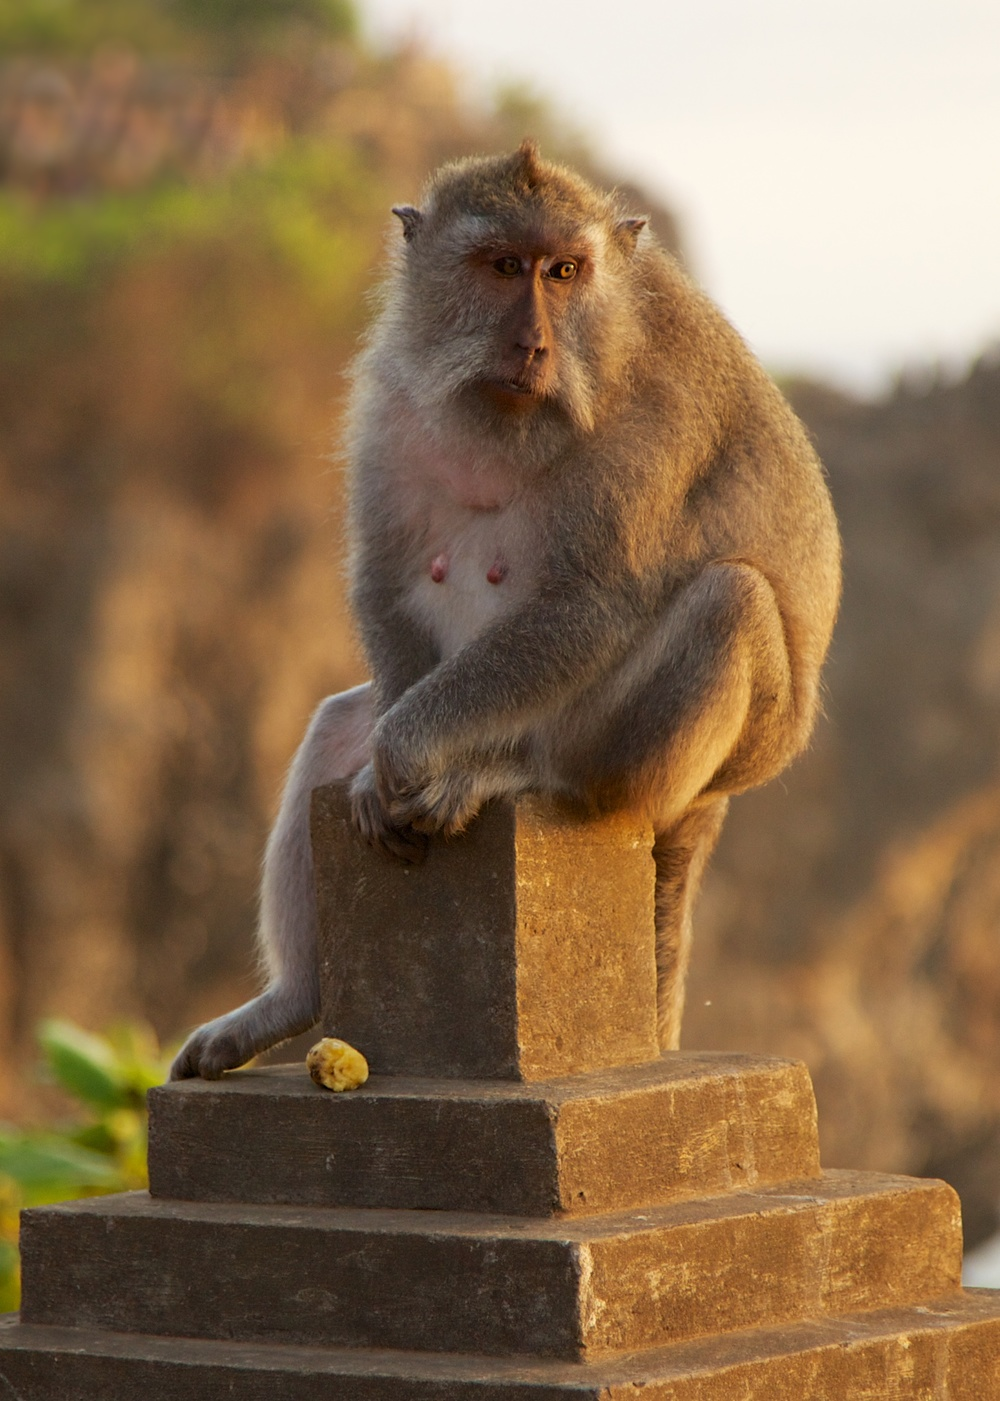 The monkeys were pretty entertaining. They do steal things from people, and there were attendants at the temple who's only job was to try and get back the items stolen by the monkeys.